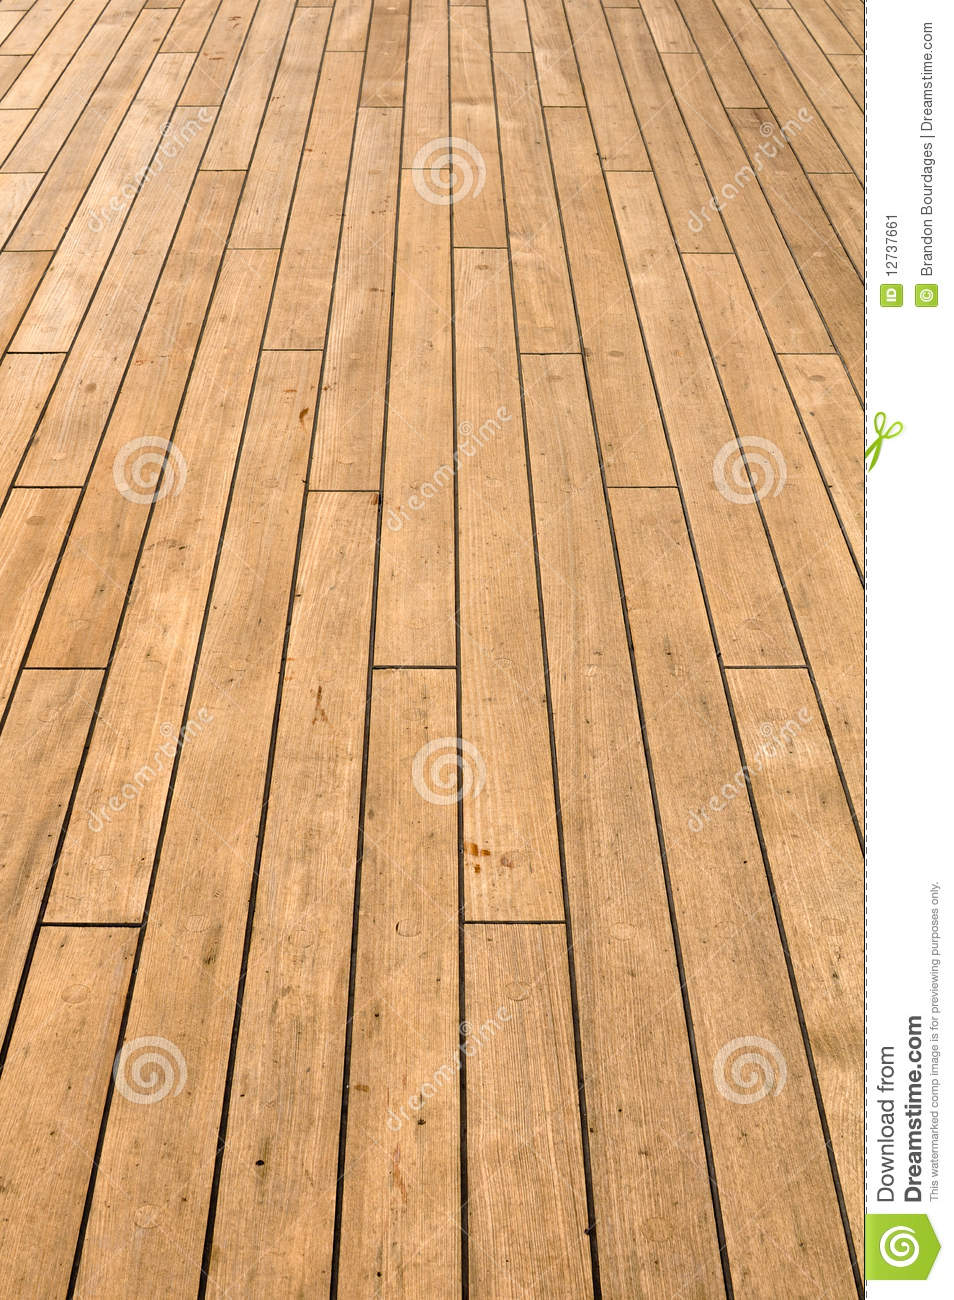 Ship Deck used for Background